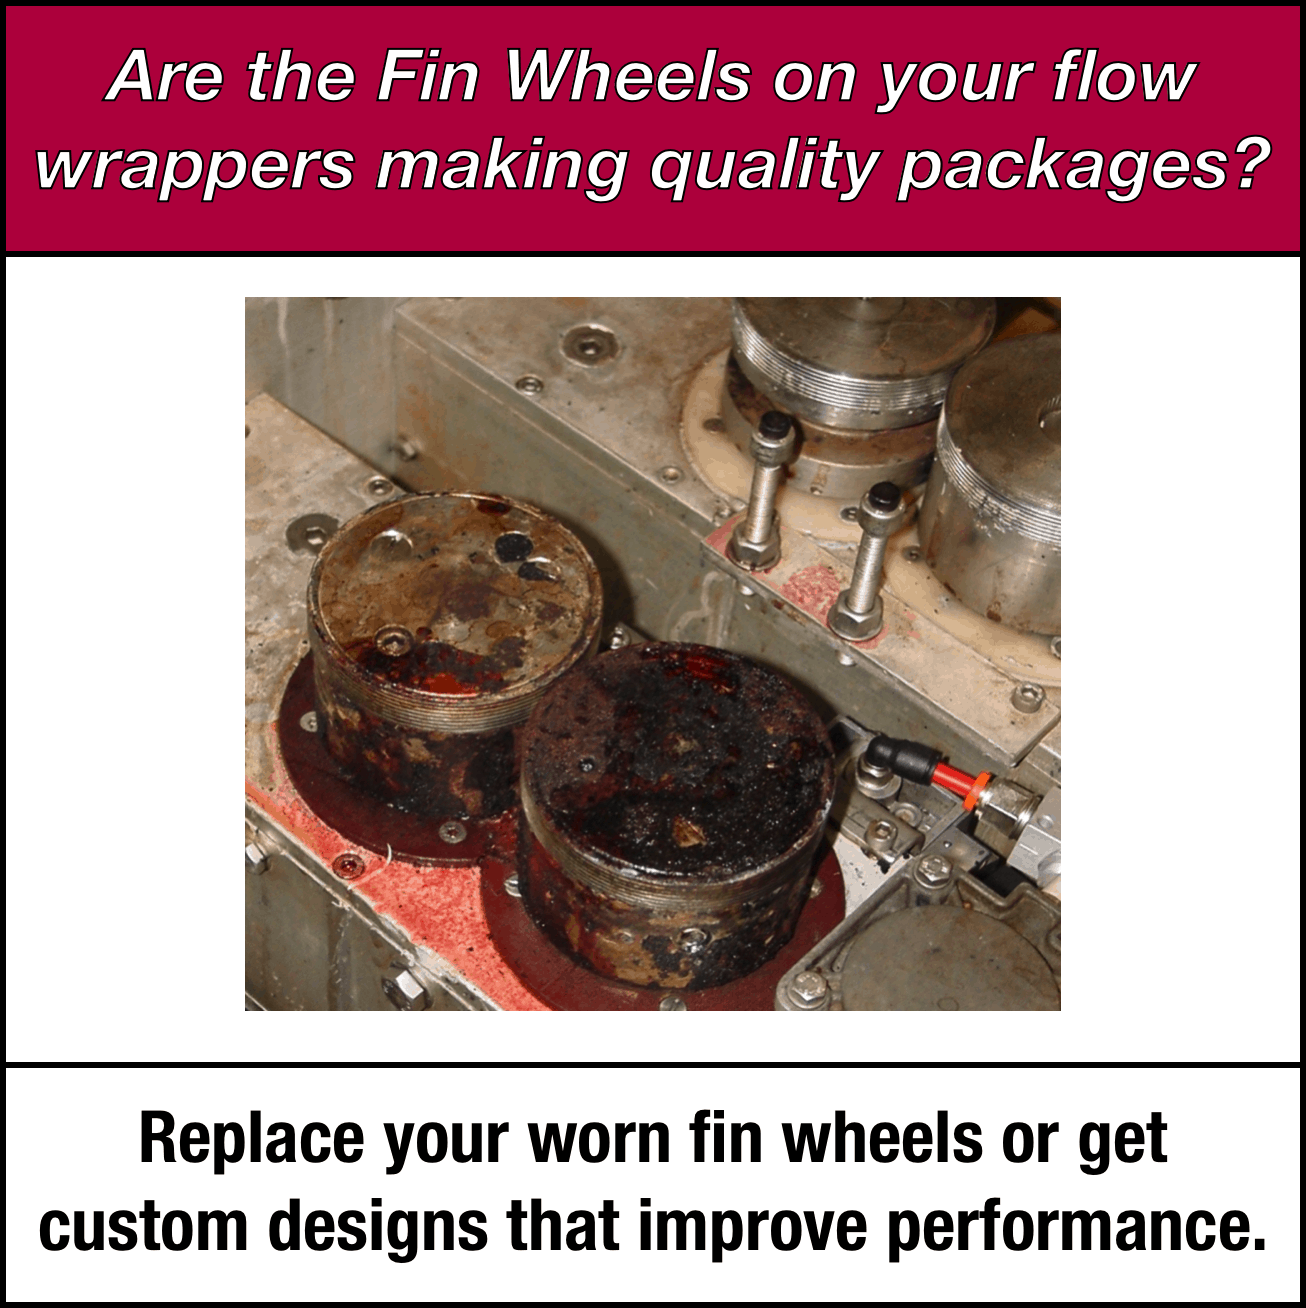 Fin Wheels for Flow Wrappers